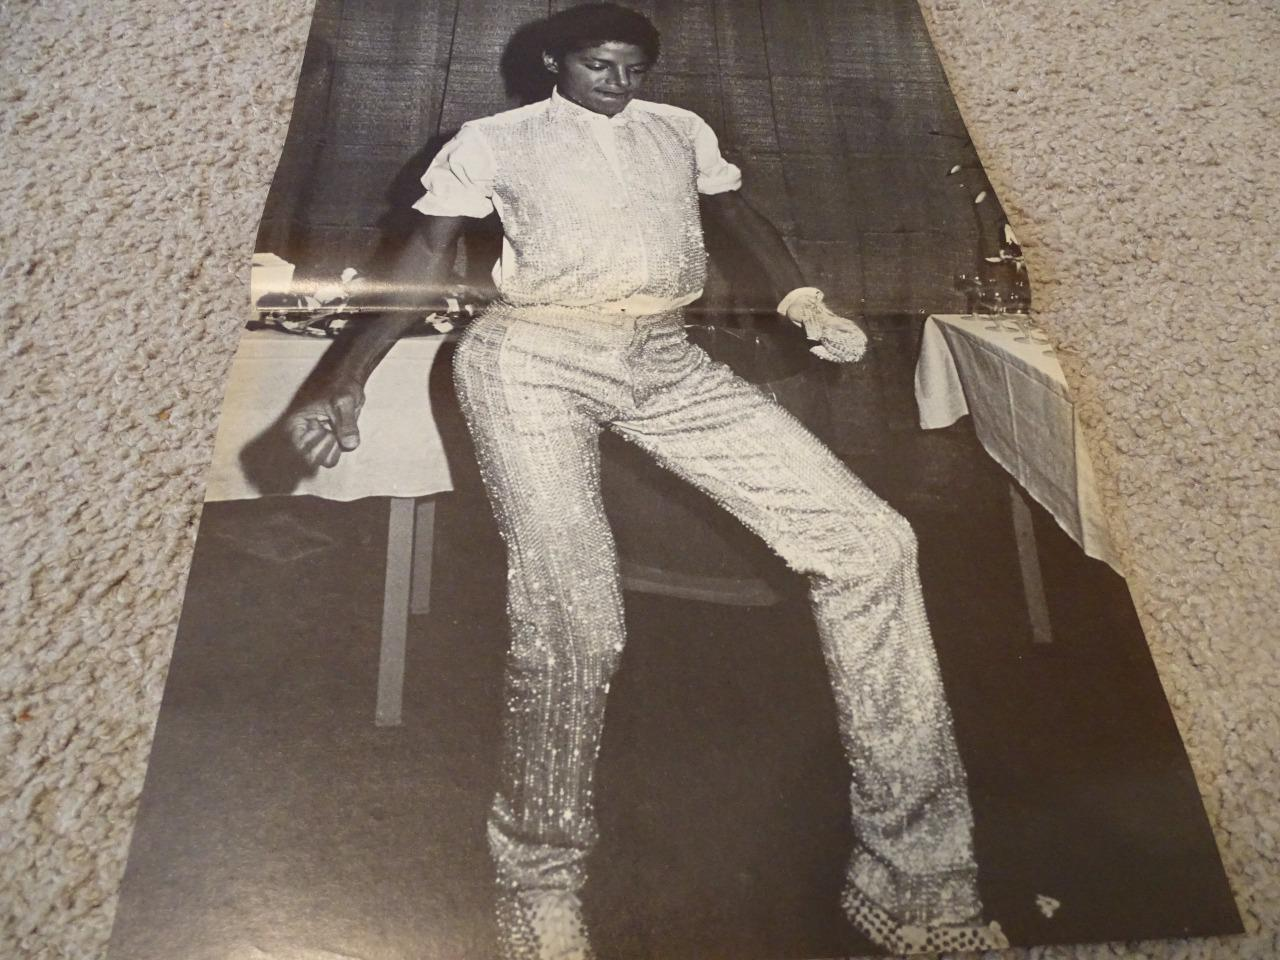 Michael Jackson teen magazine poster clipping Tiger Beat By a Piano